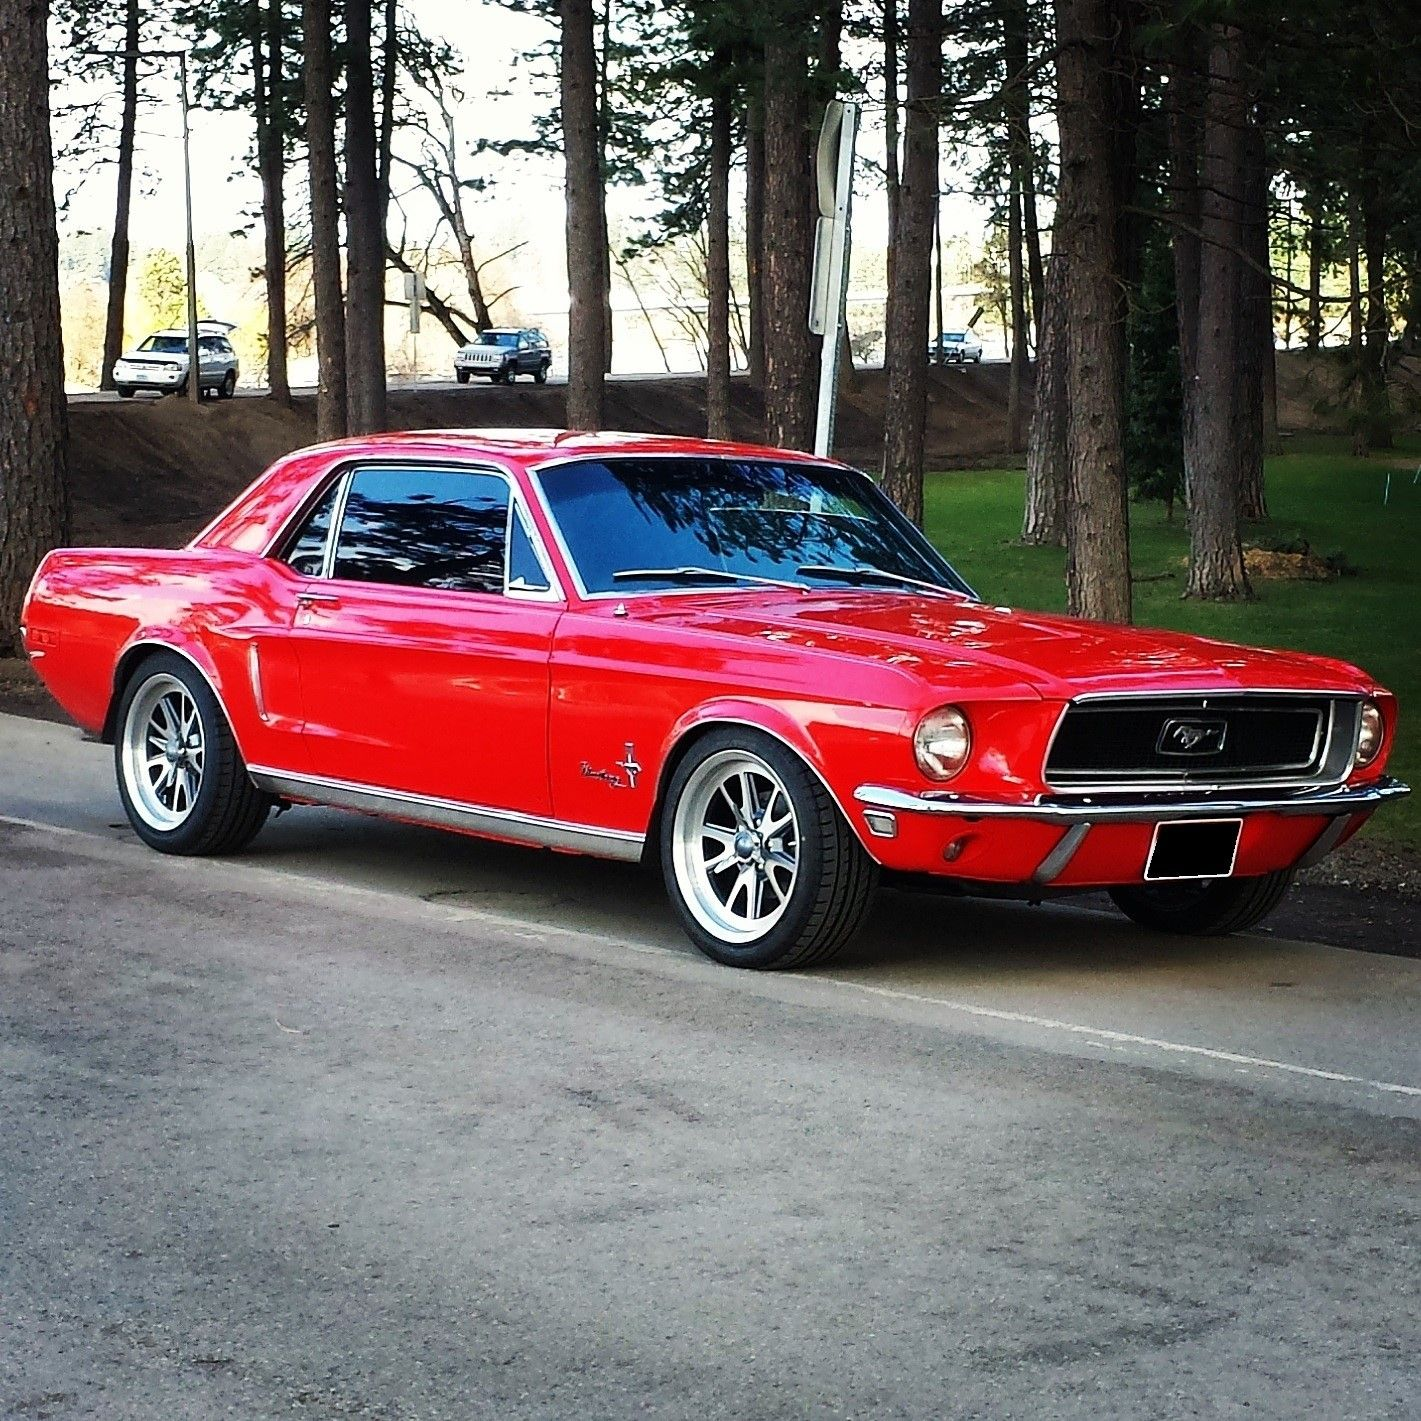 68 mustang coupe my favorite mustang of all time